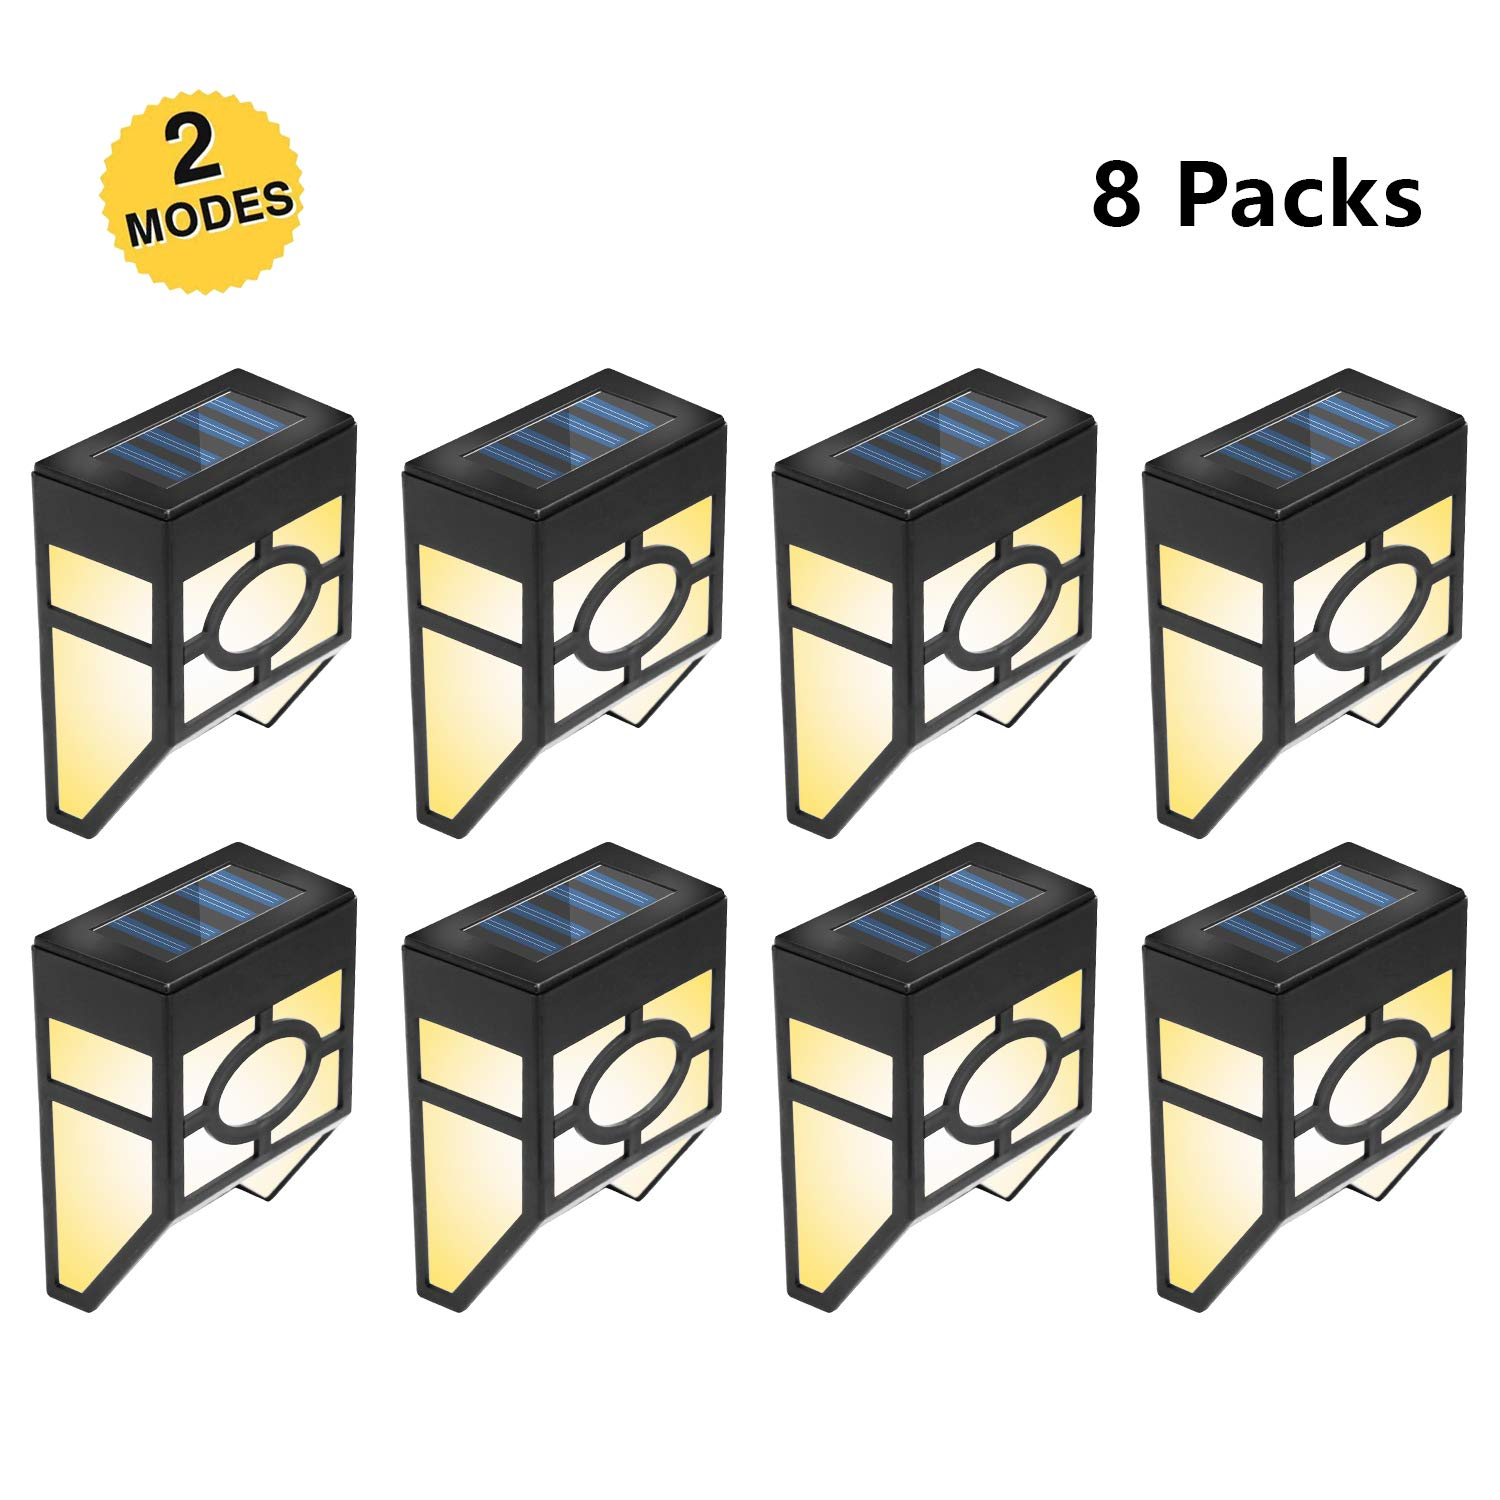 INCX 8pcs Solar Fence Lights-Solar Deck Lights-2 Models Waterproof LED Outdoor Lighting for Gardon Yard Landscape Patio Decoration by INCX